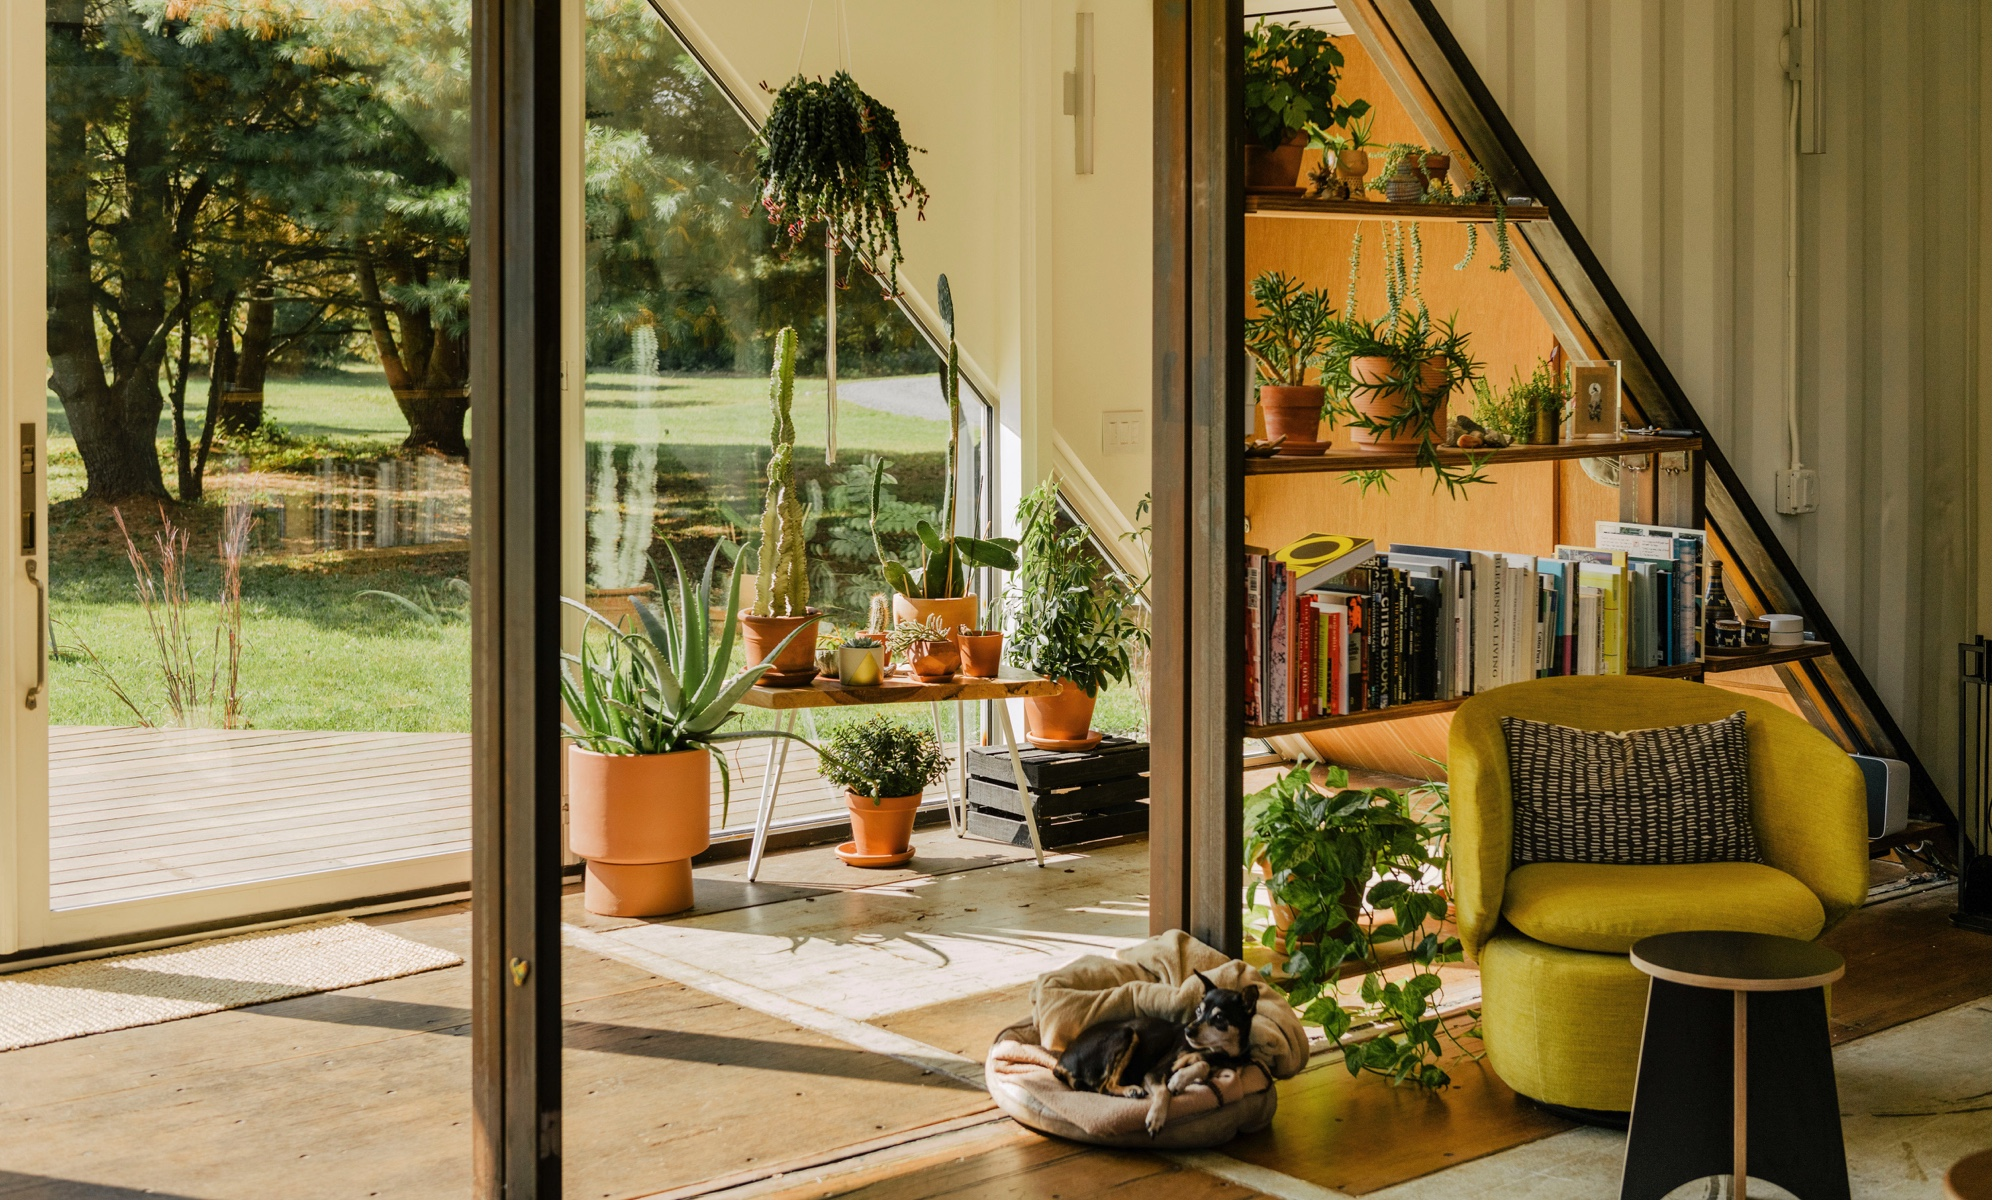 A large plant collection in a modern glass living space.